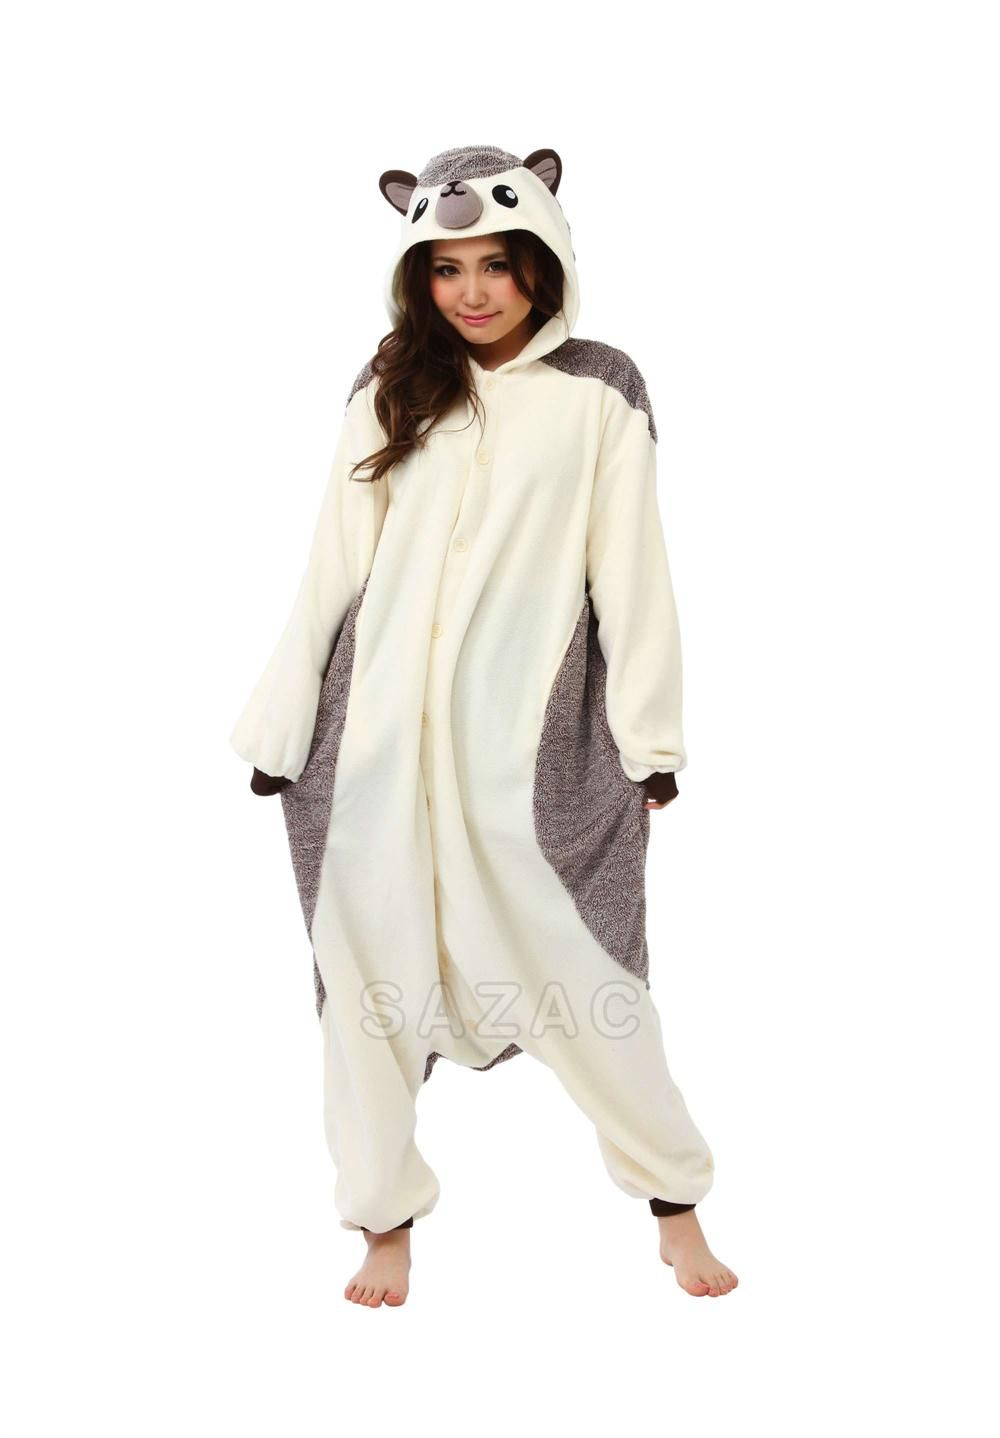 Sazac adult Kigurumi areone size fits most adults. It is just the distance  from one side of the Kigurumi to the other. What is Kigurumi  9f13dff46